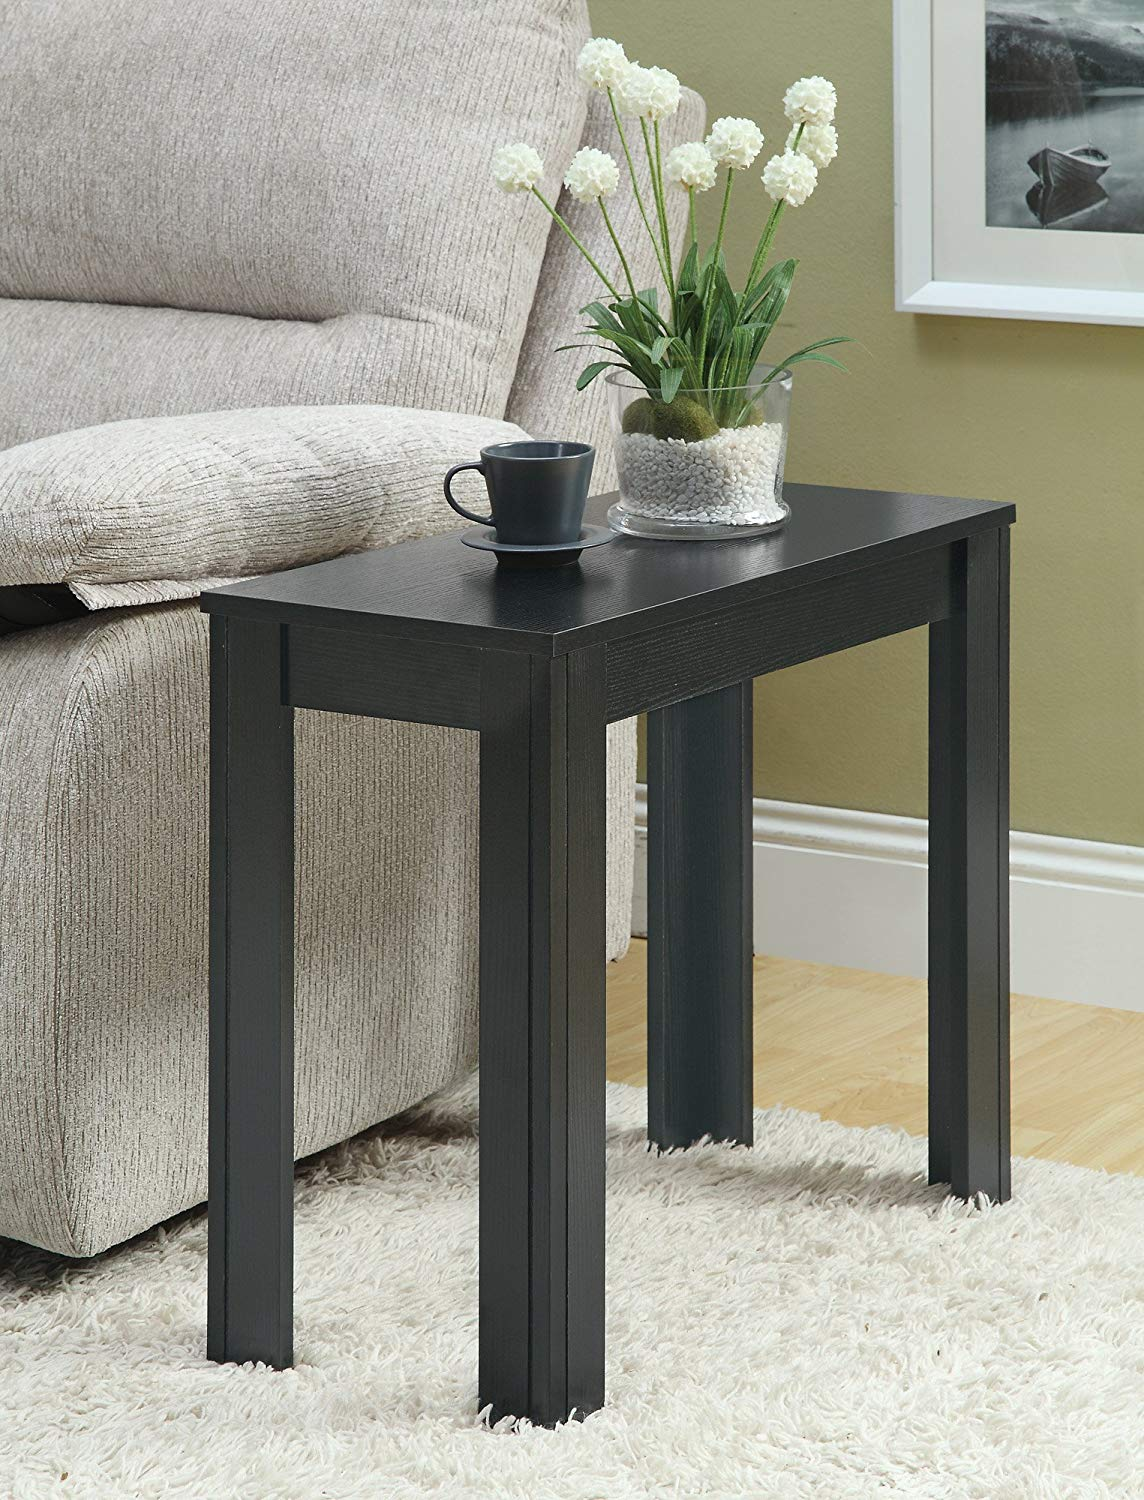 furniture monarch hall console accent table cappuccino specialties black oak side rubber floor divider mid century modern round dining acrylic chest coffee small narrow quilt